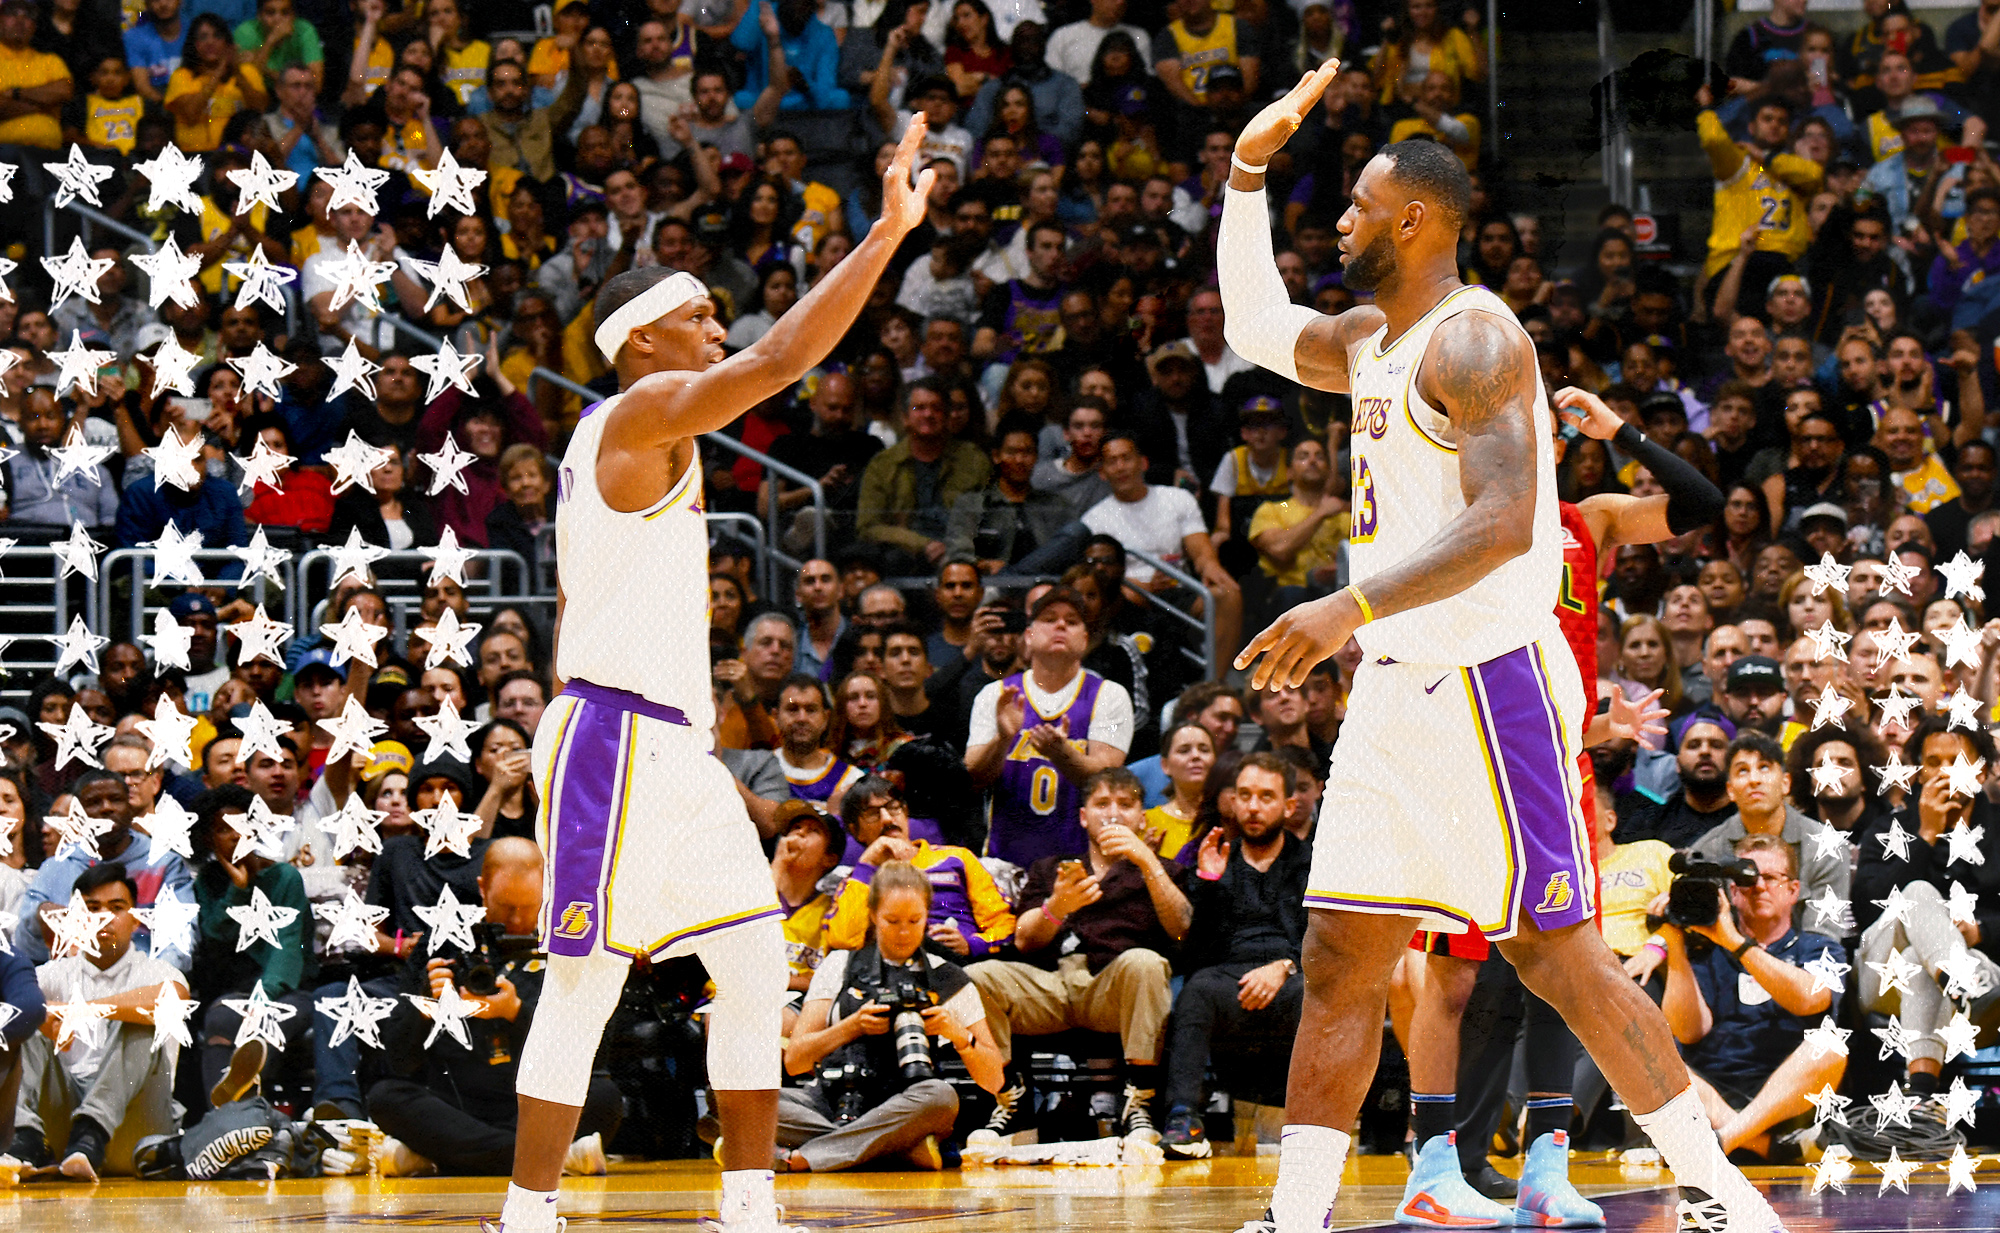 LeBron James and Rajon Rondo are a match made in basketball IQ heaven